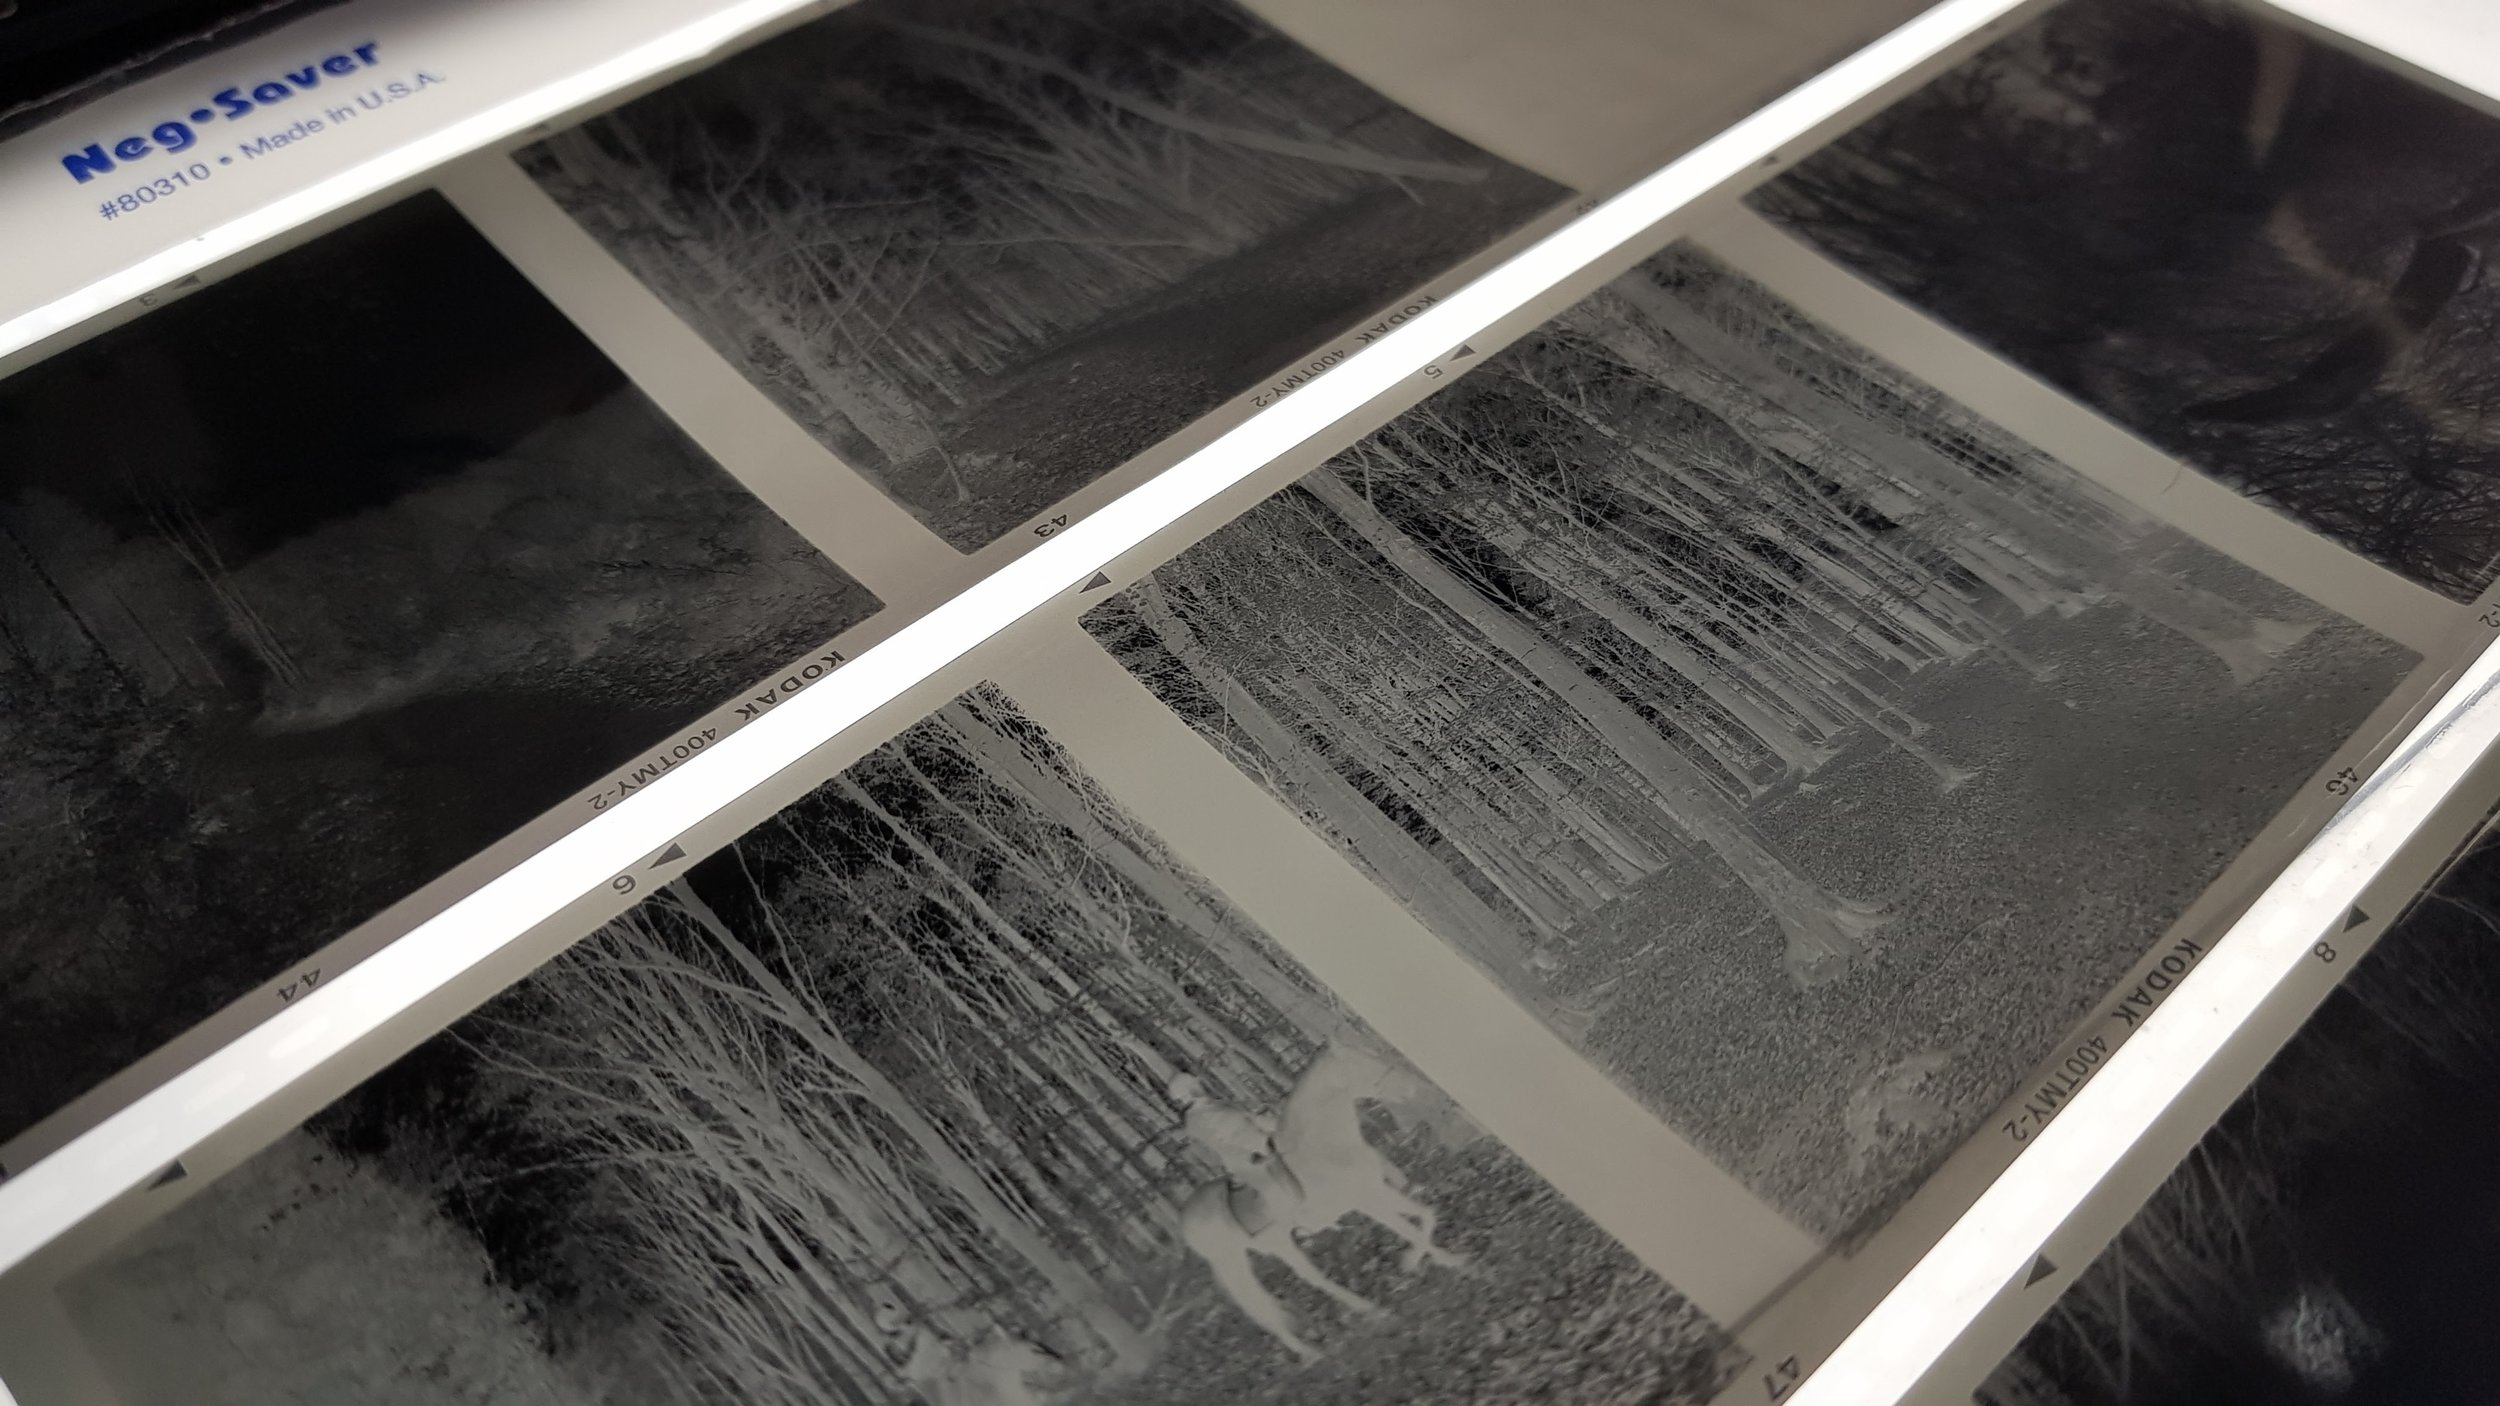 My negatives on the light table